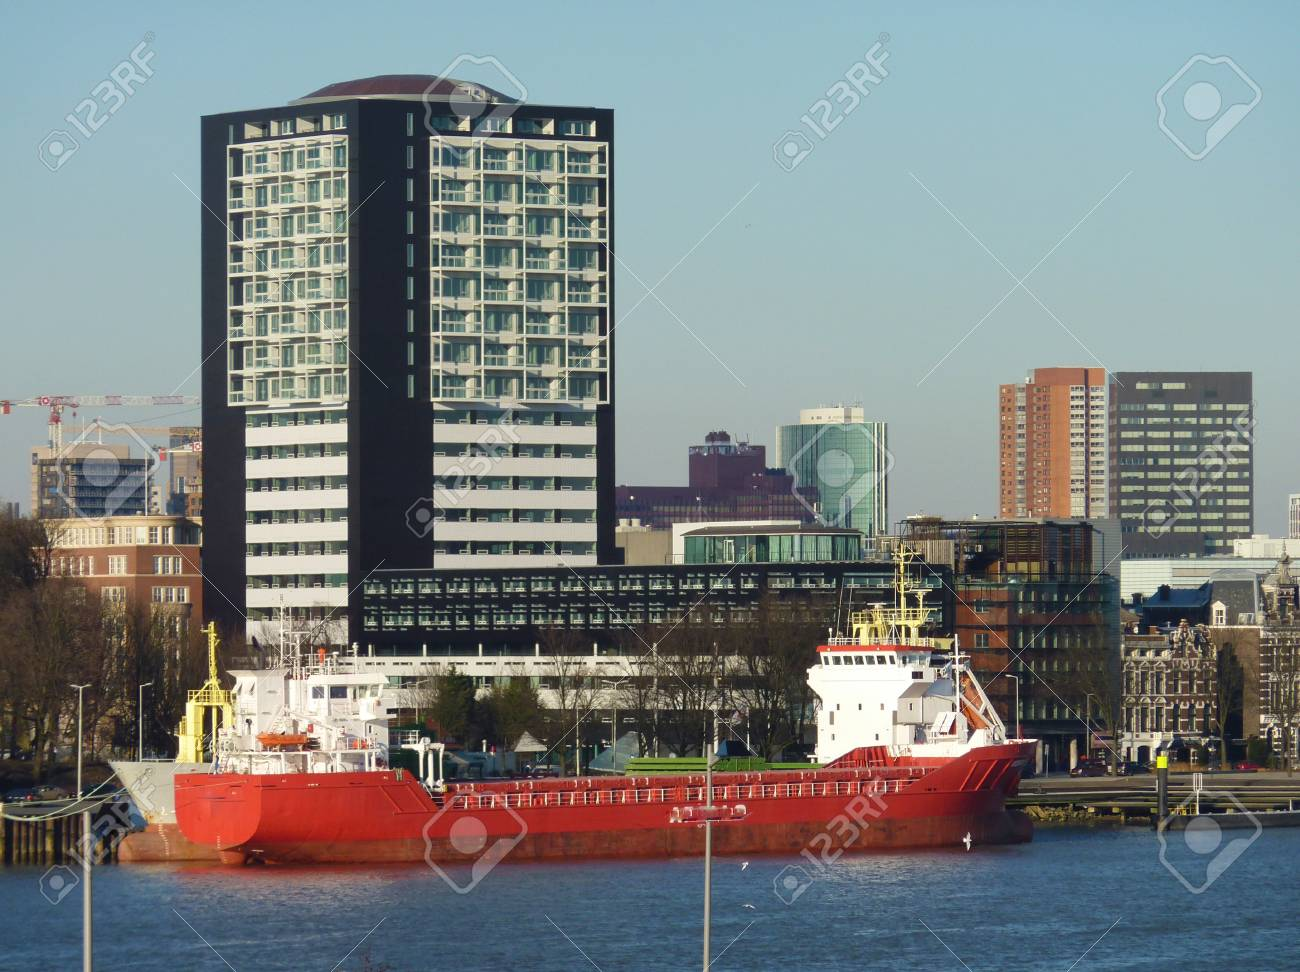 Skyscrapers and a ship along the river Meuse in Rotterdam in the Netherlands Stock Photo - 12378169